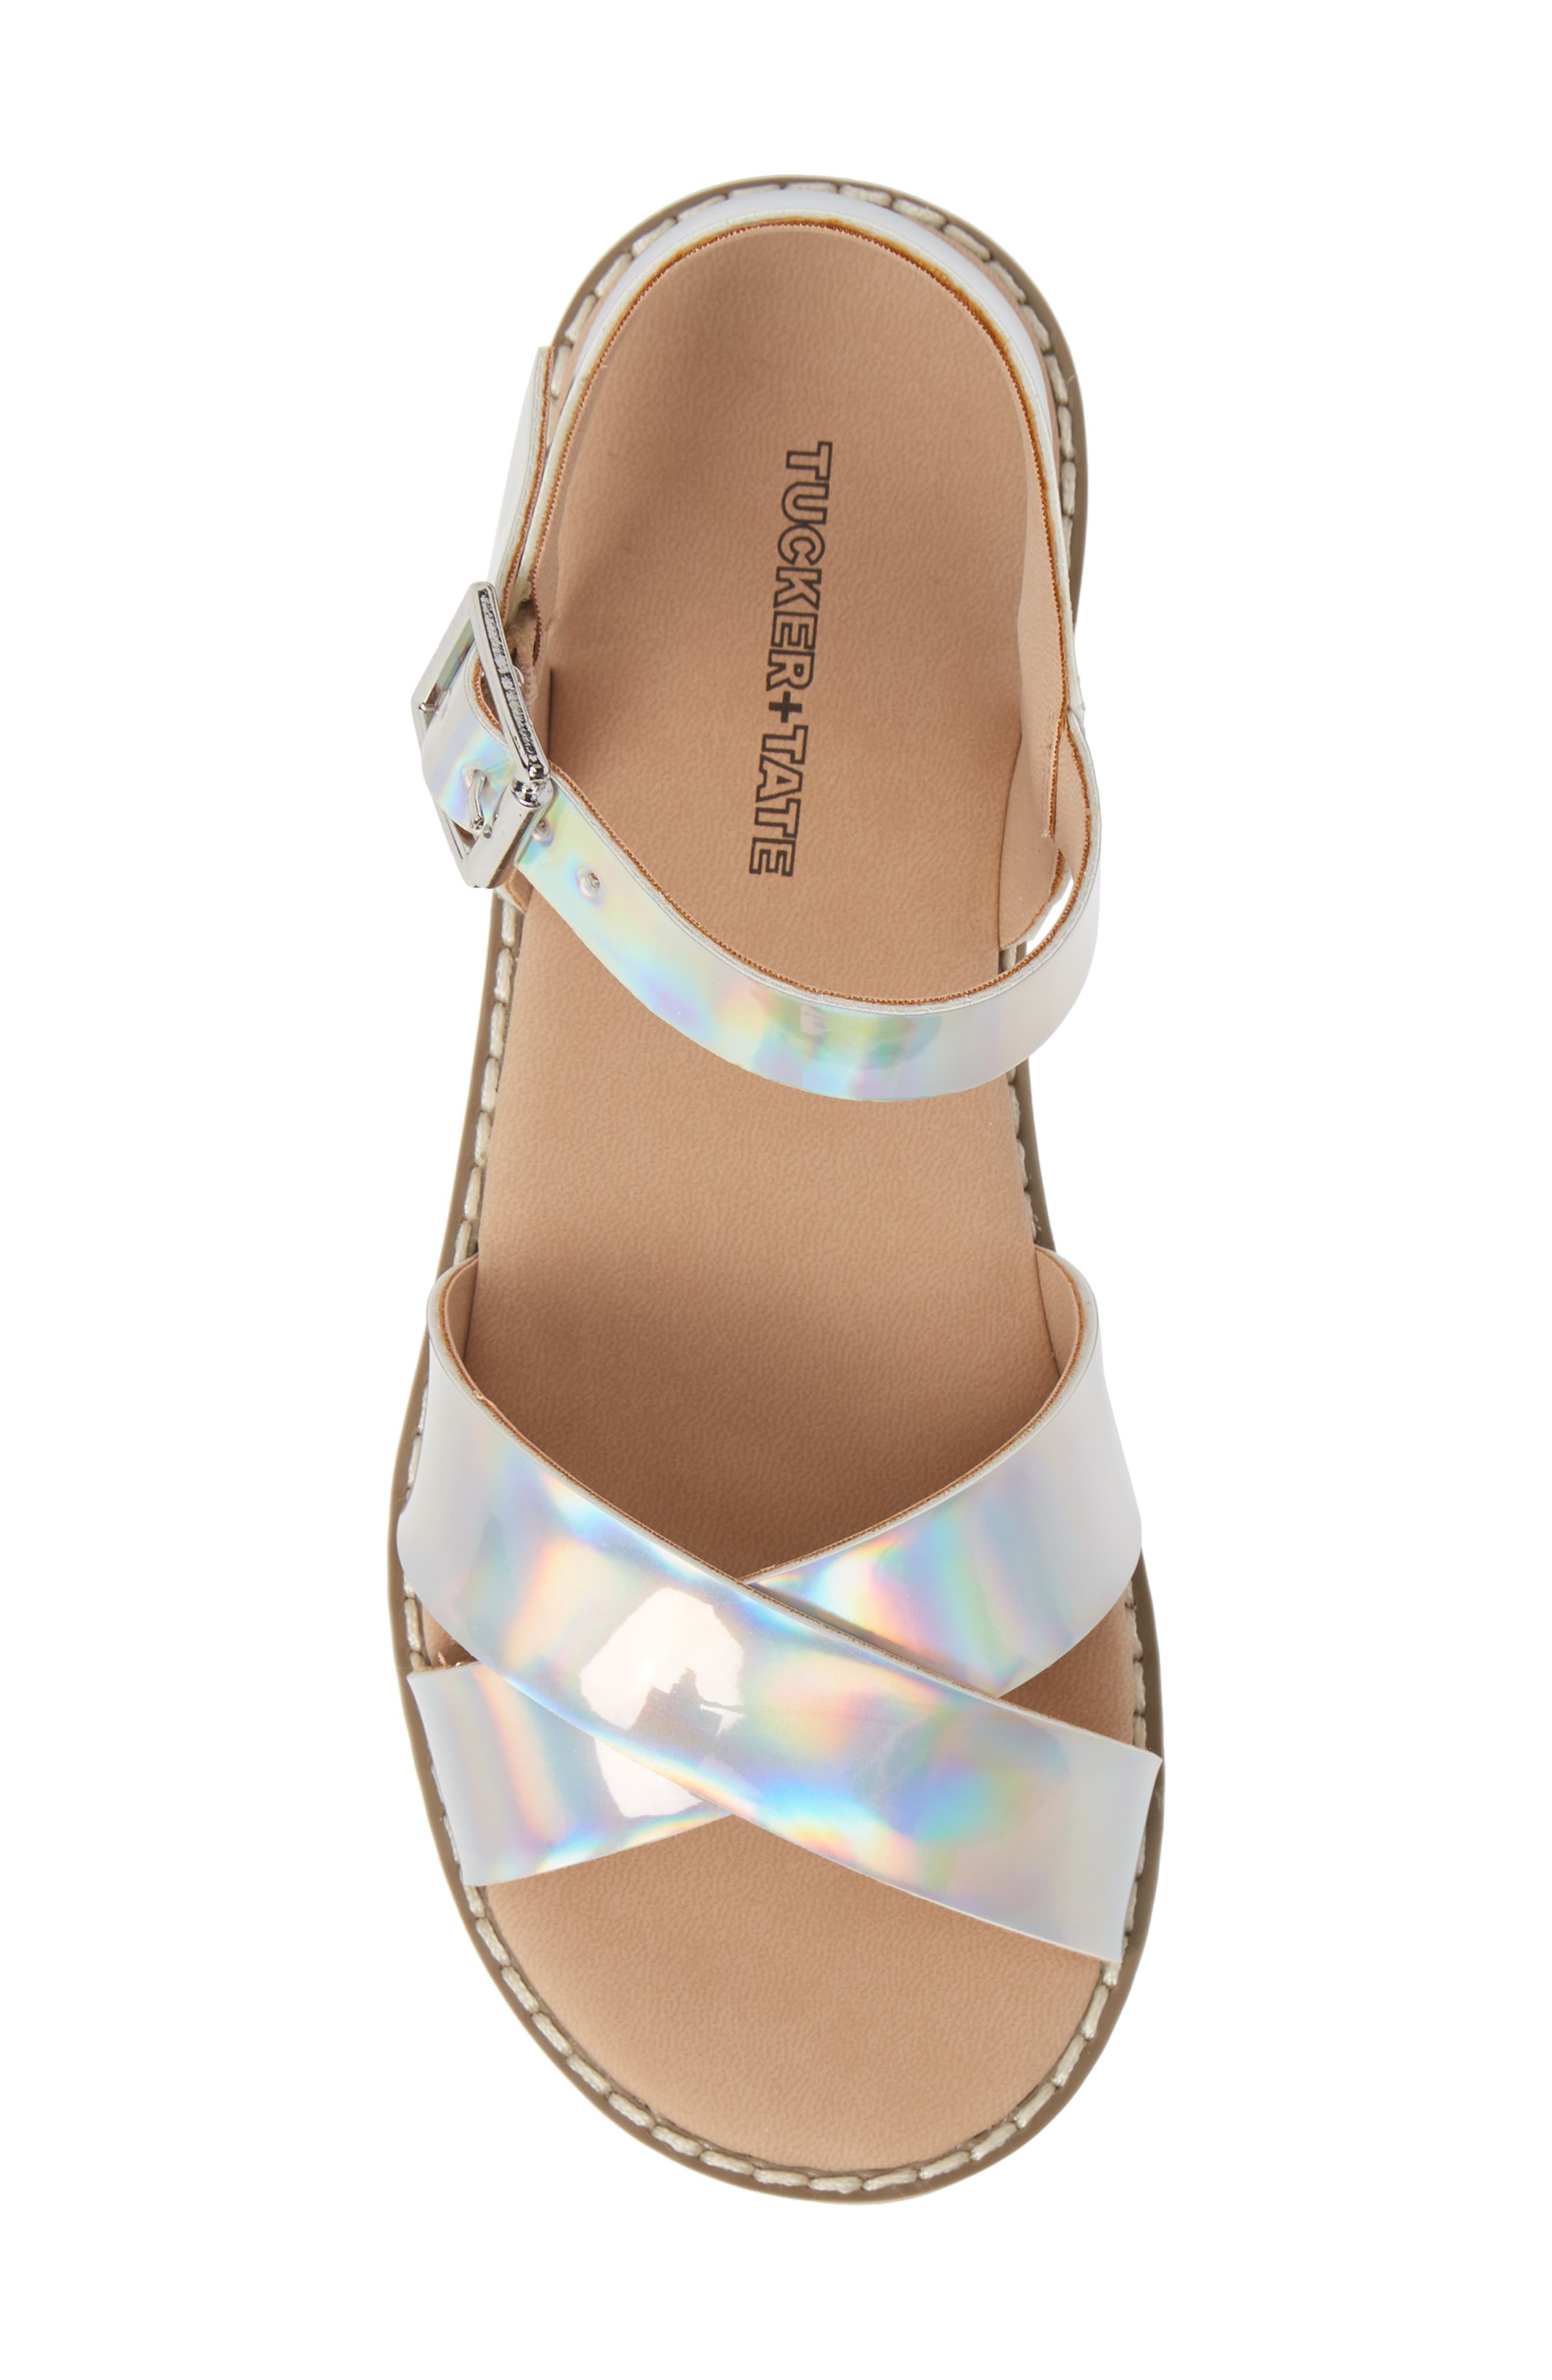 Arya Cross Strap Sandal,                             Alternate thumbnail 5, color,                             SILVER HOLOGRAM FAUX LEATHER